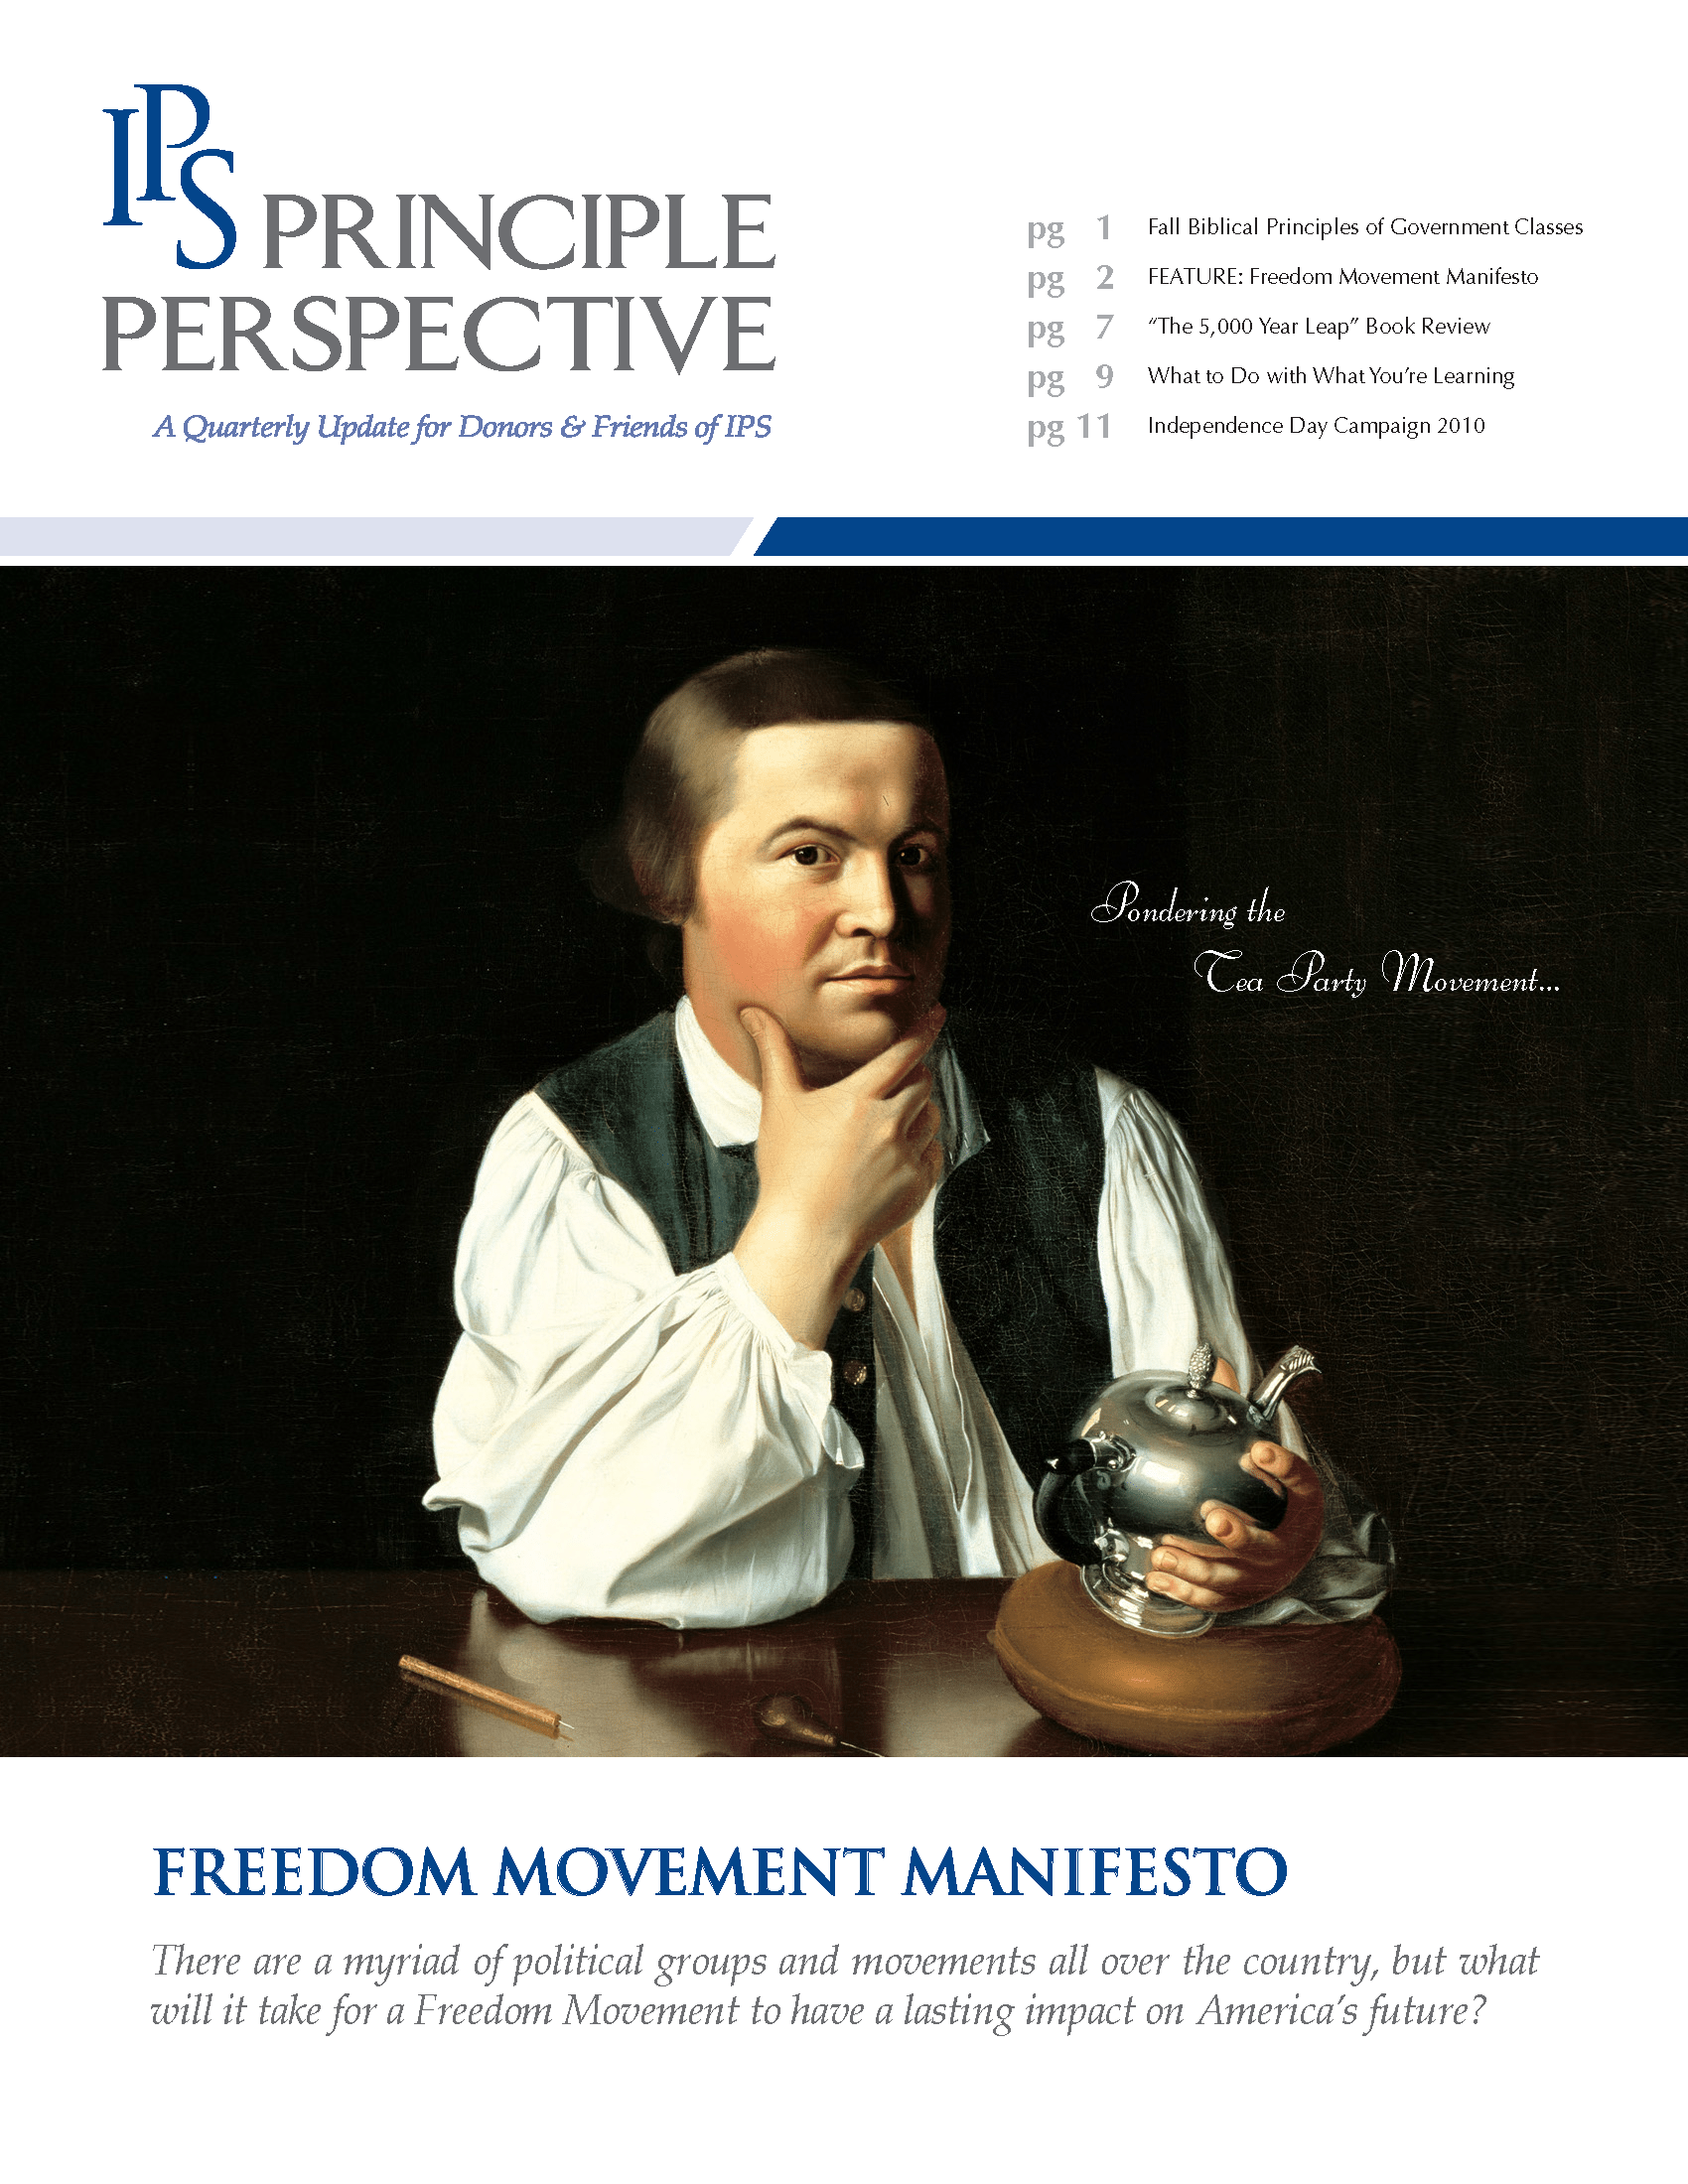 Principle Perspective - Freedom Movement Manifesto